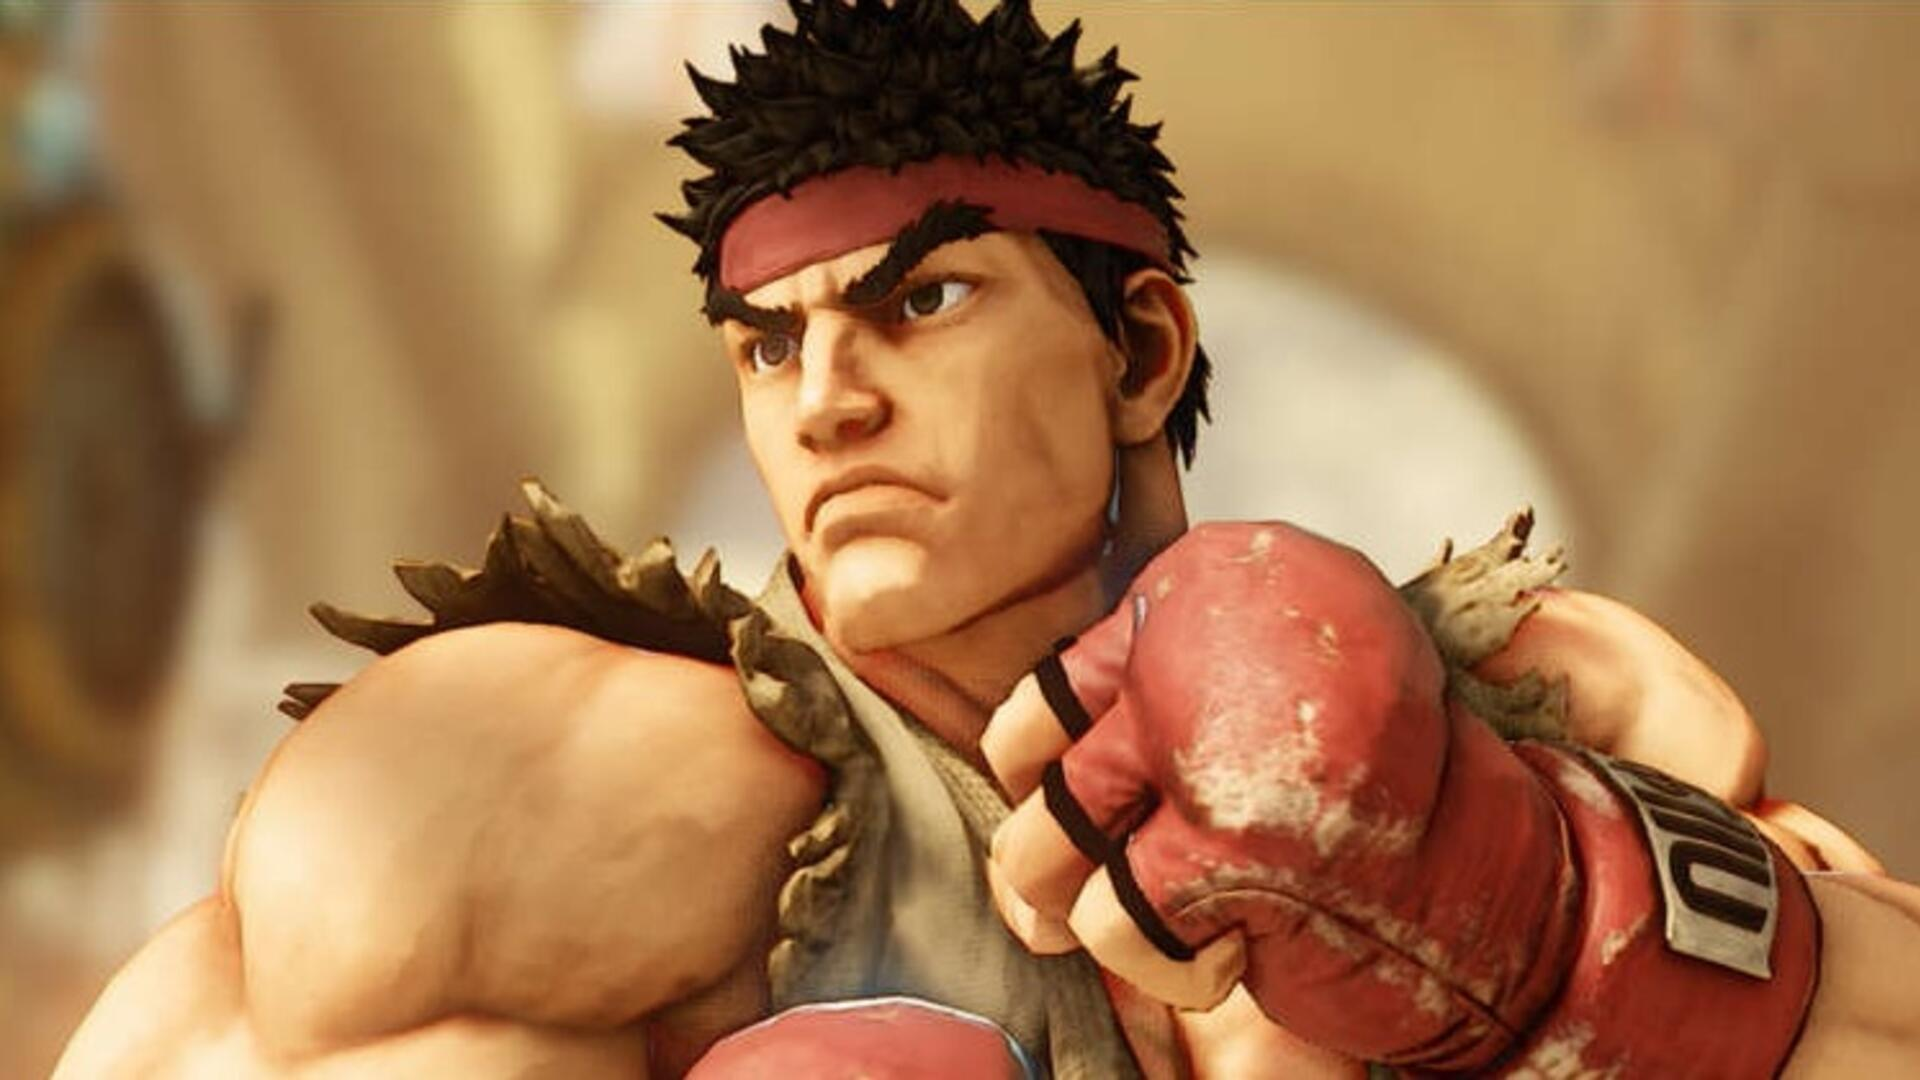 Street Fighter 5 - All Critical Art Finishers | USgamer